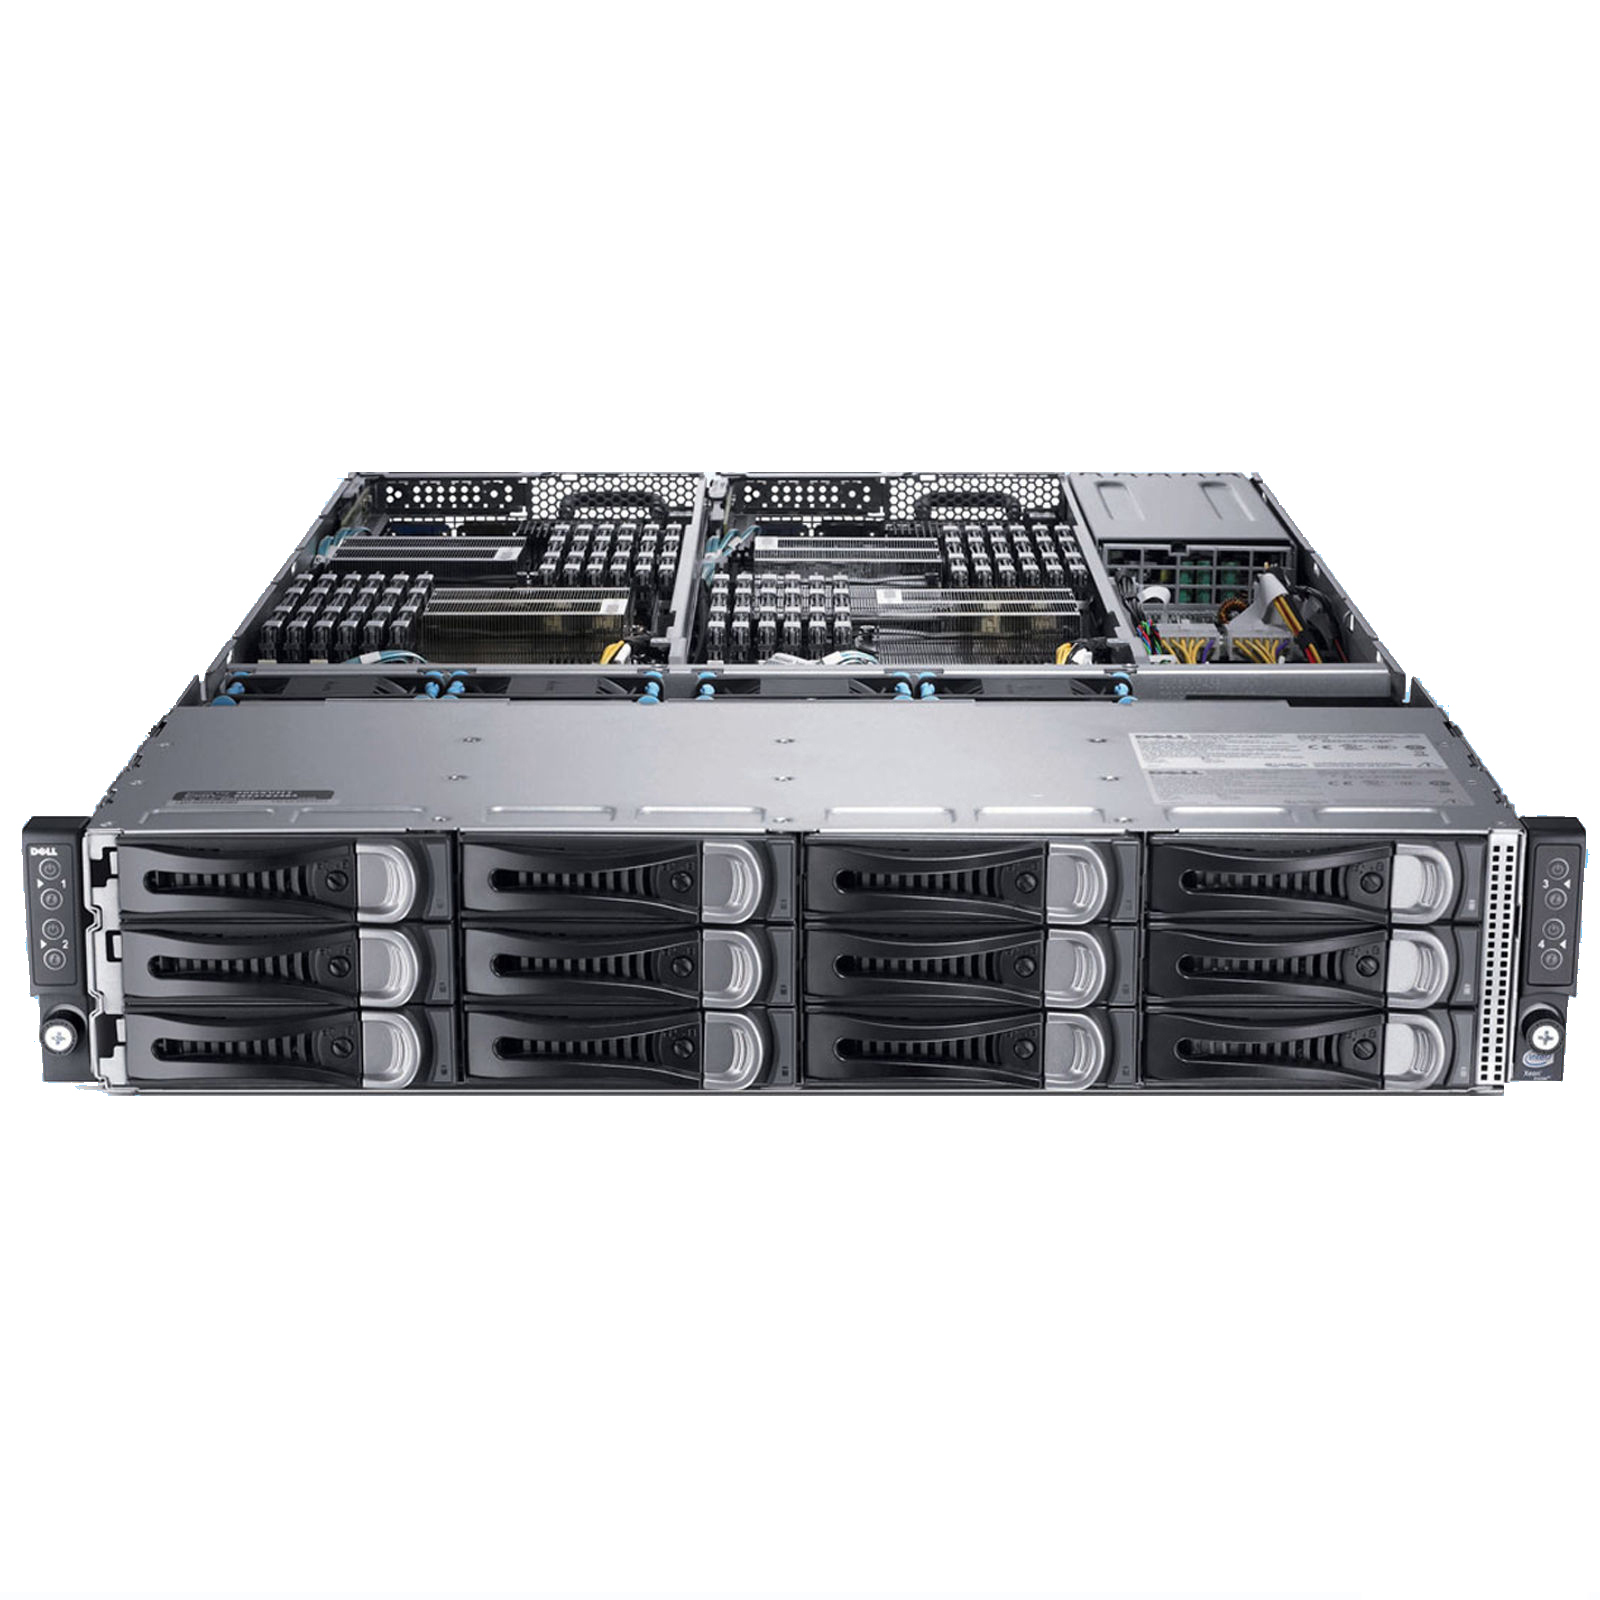 SERVER DELL POWEREDGE C6320 E5-2600 v4 product family Up to 4 x 2-socket 4 NODE BAREBONE SFF